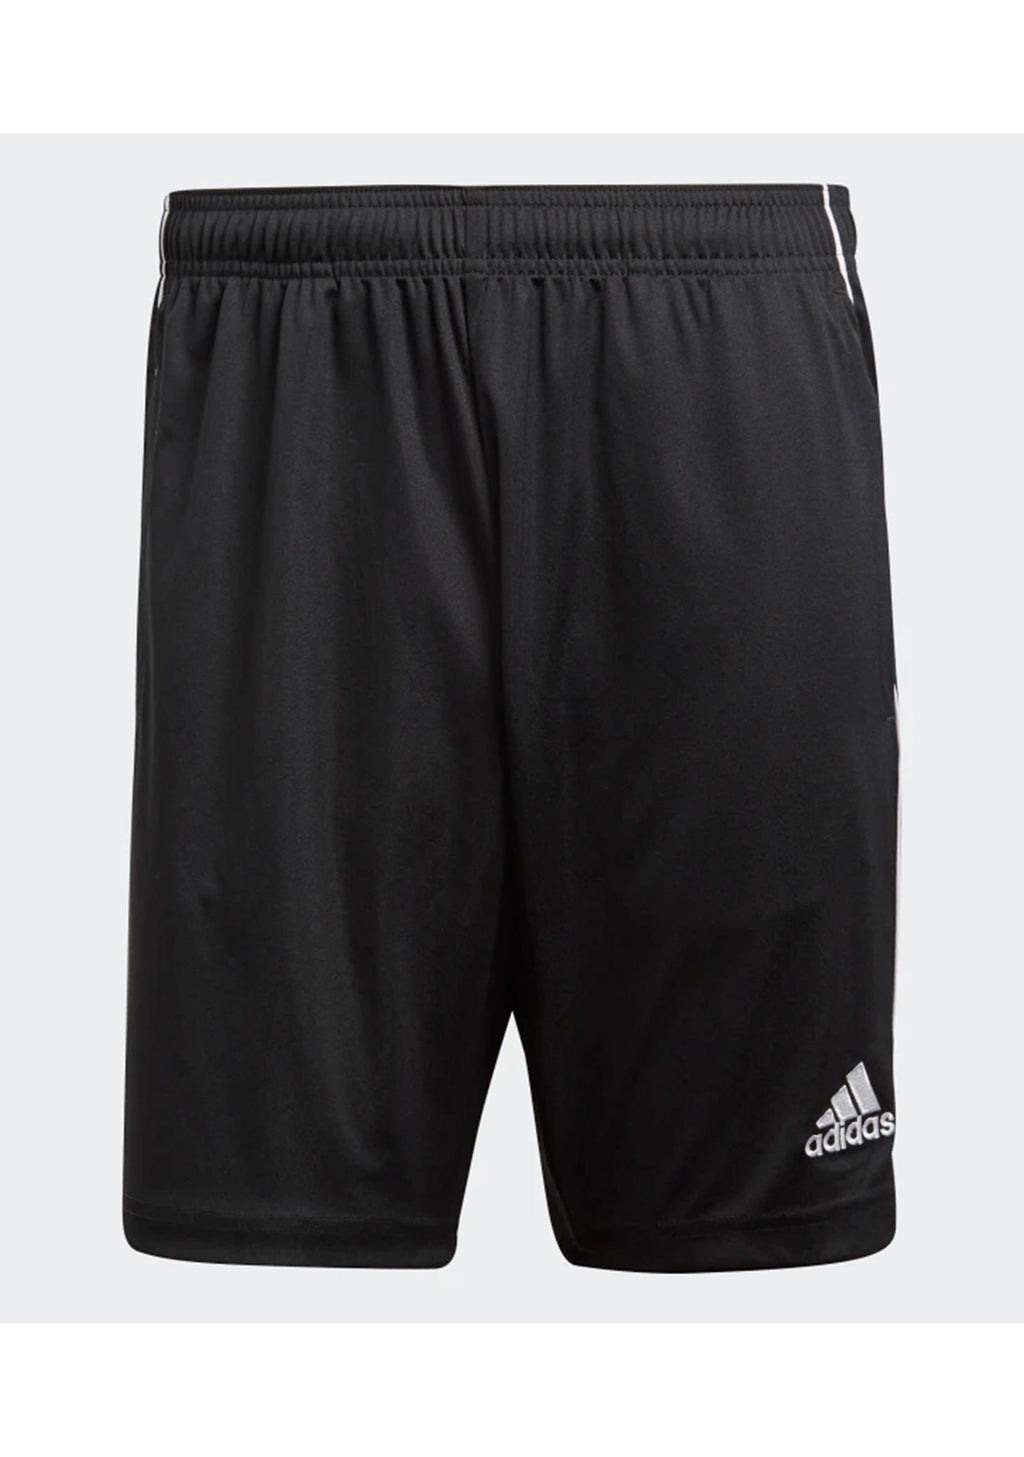 ADIDAS MENS CORE 18 TRAINING SHORTS <BR> CE9031